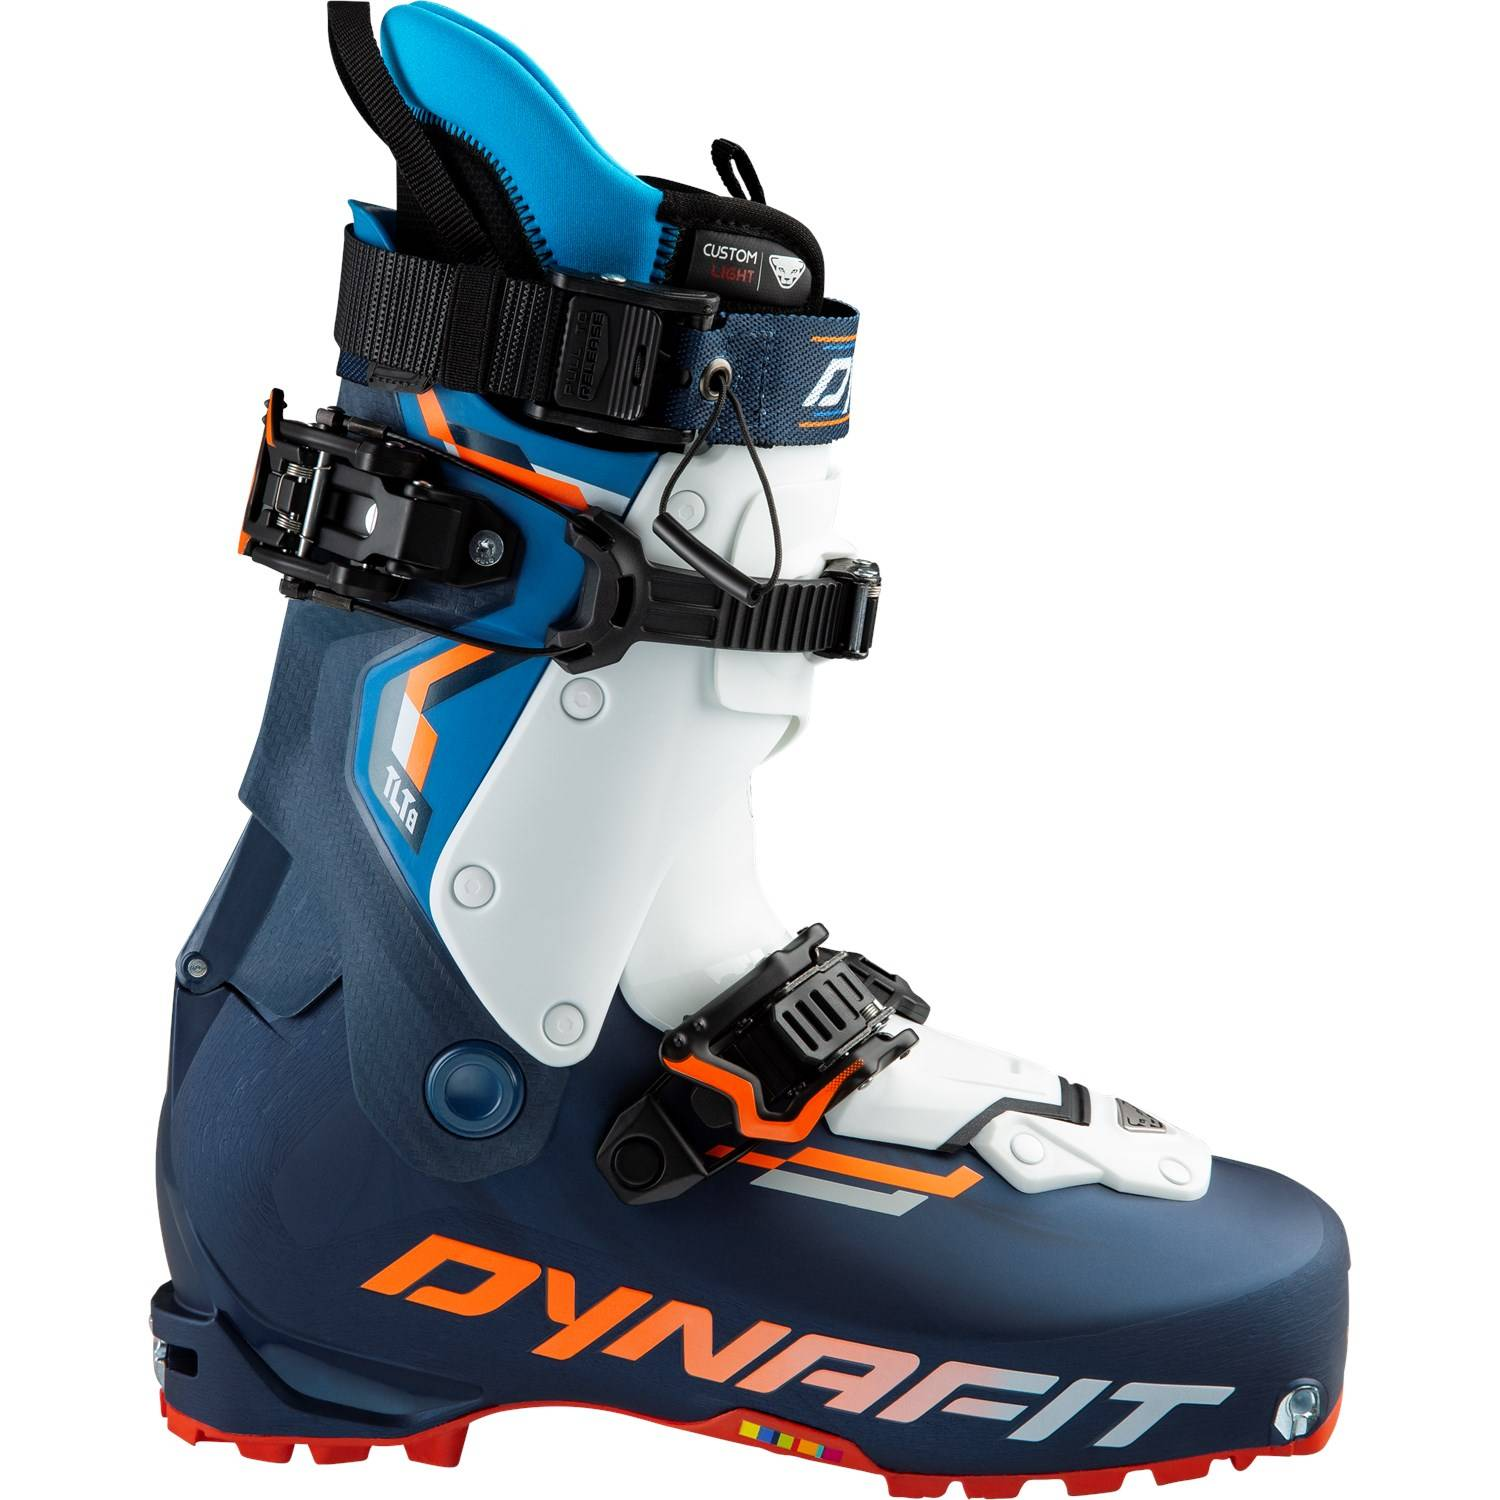 DYNAFIT Chaussures ski TLT 8 Expedition CL